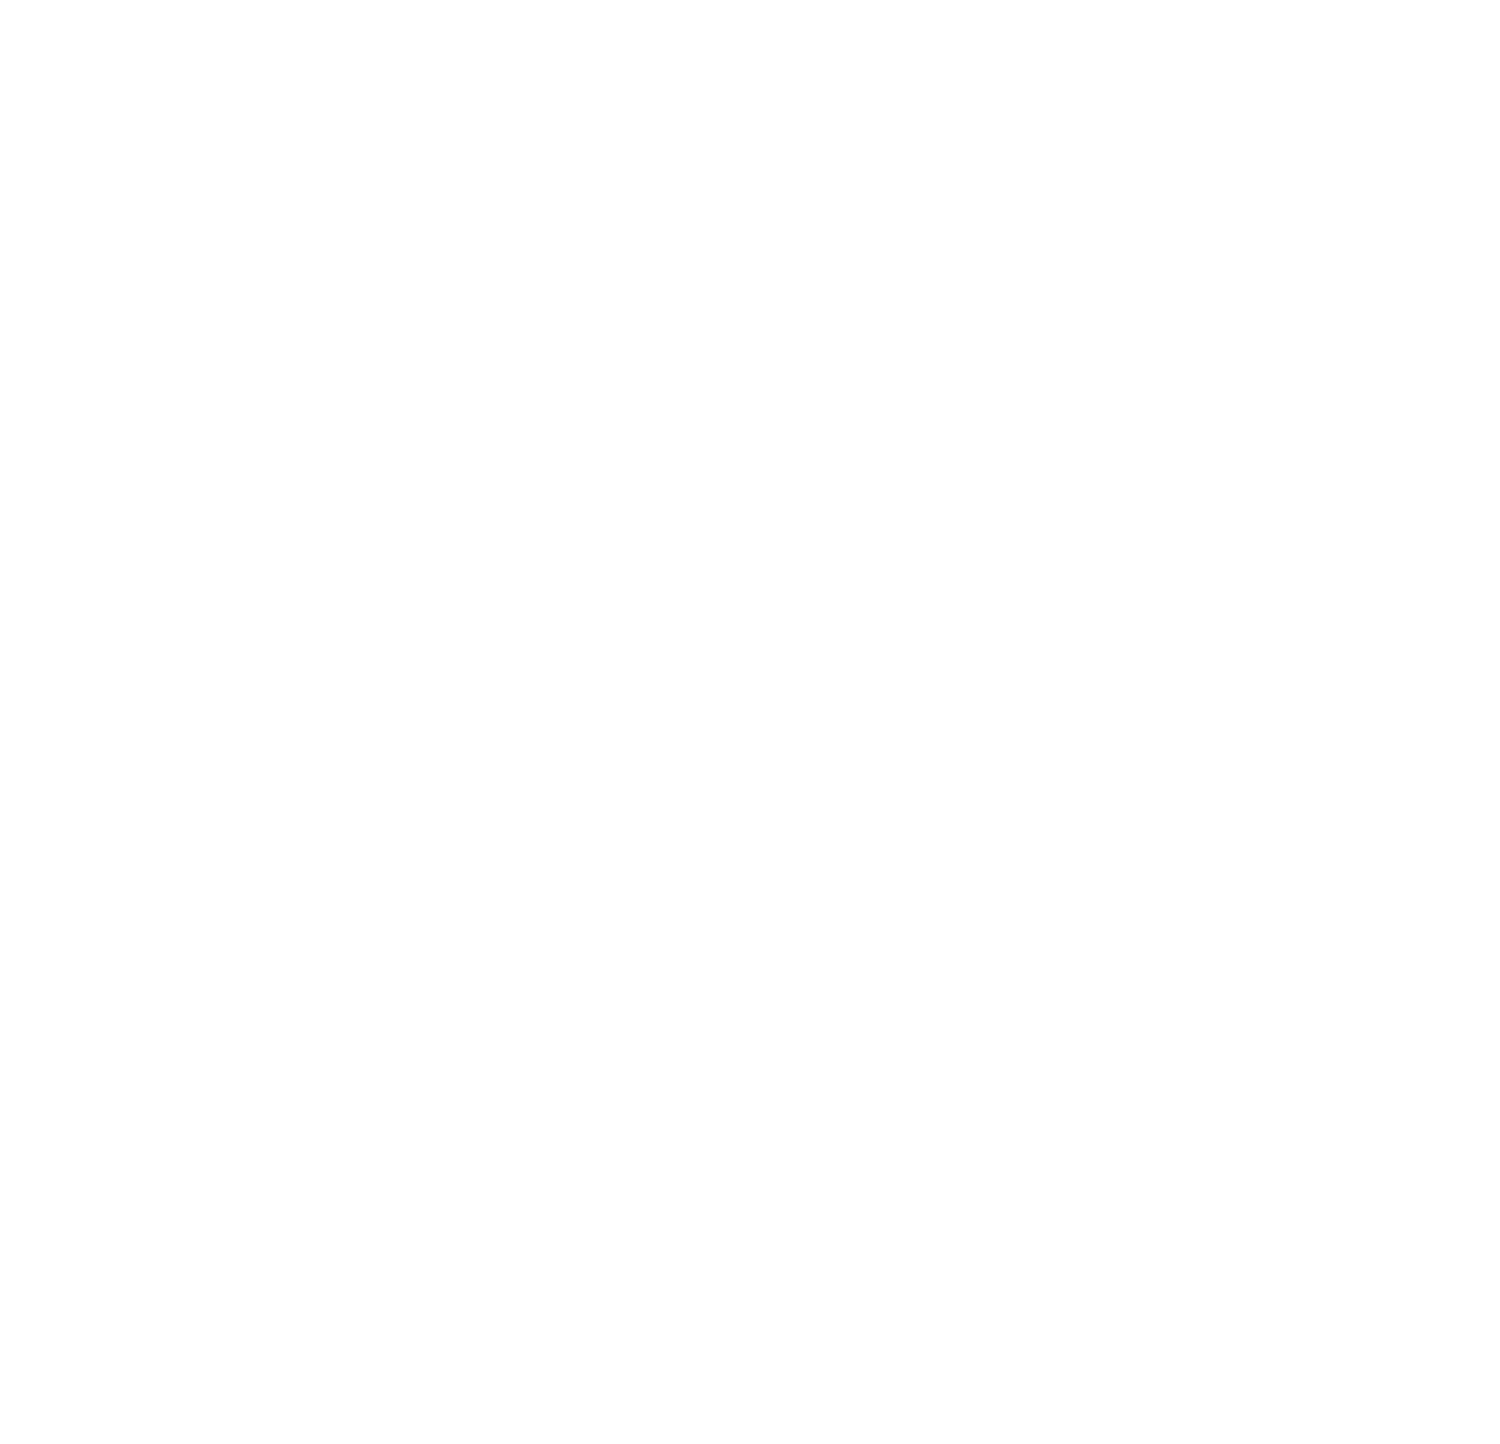 Backlot Coffee